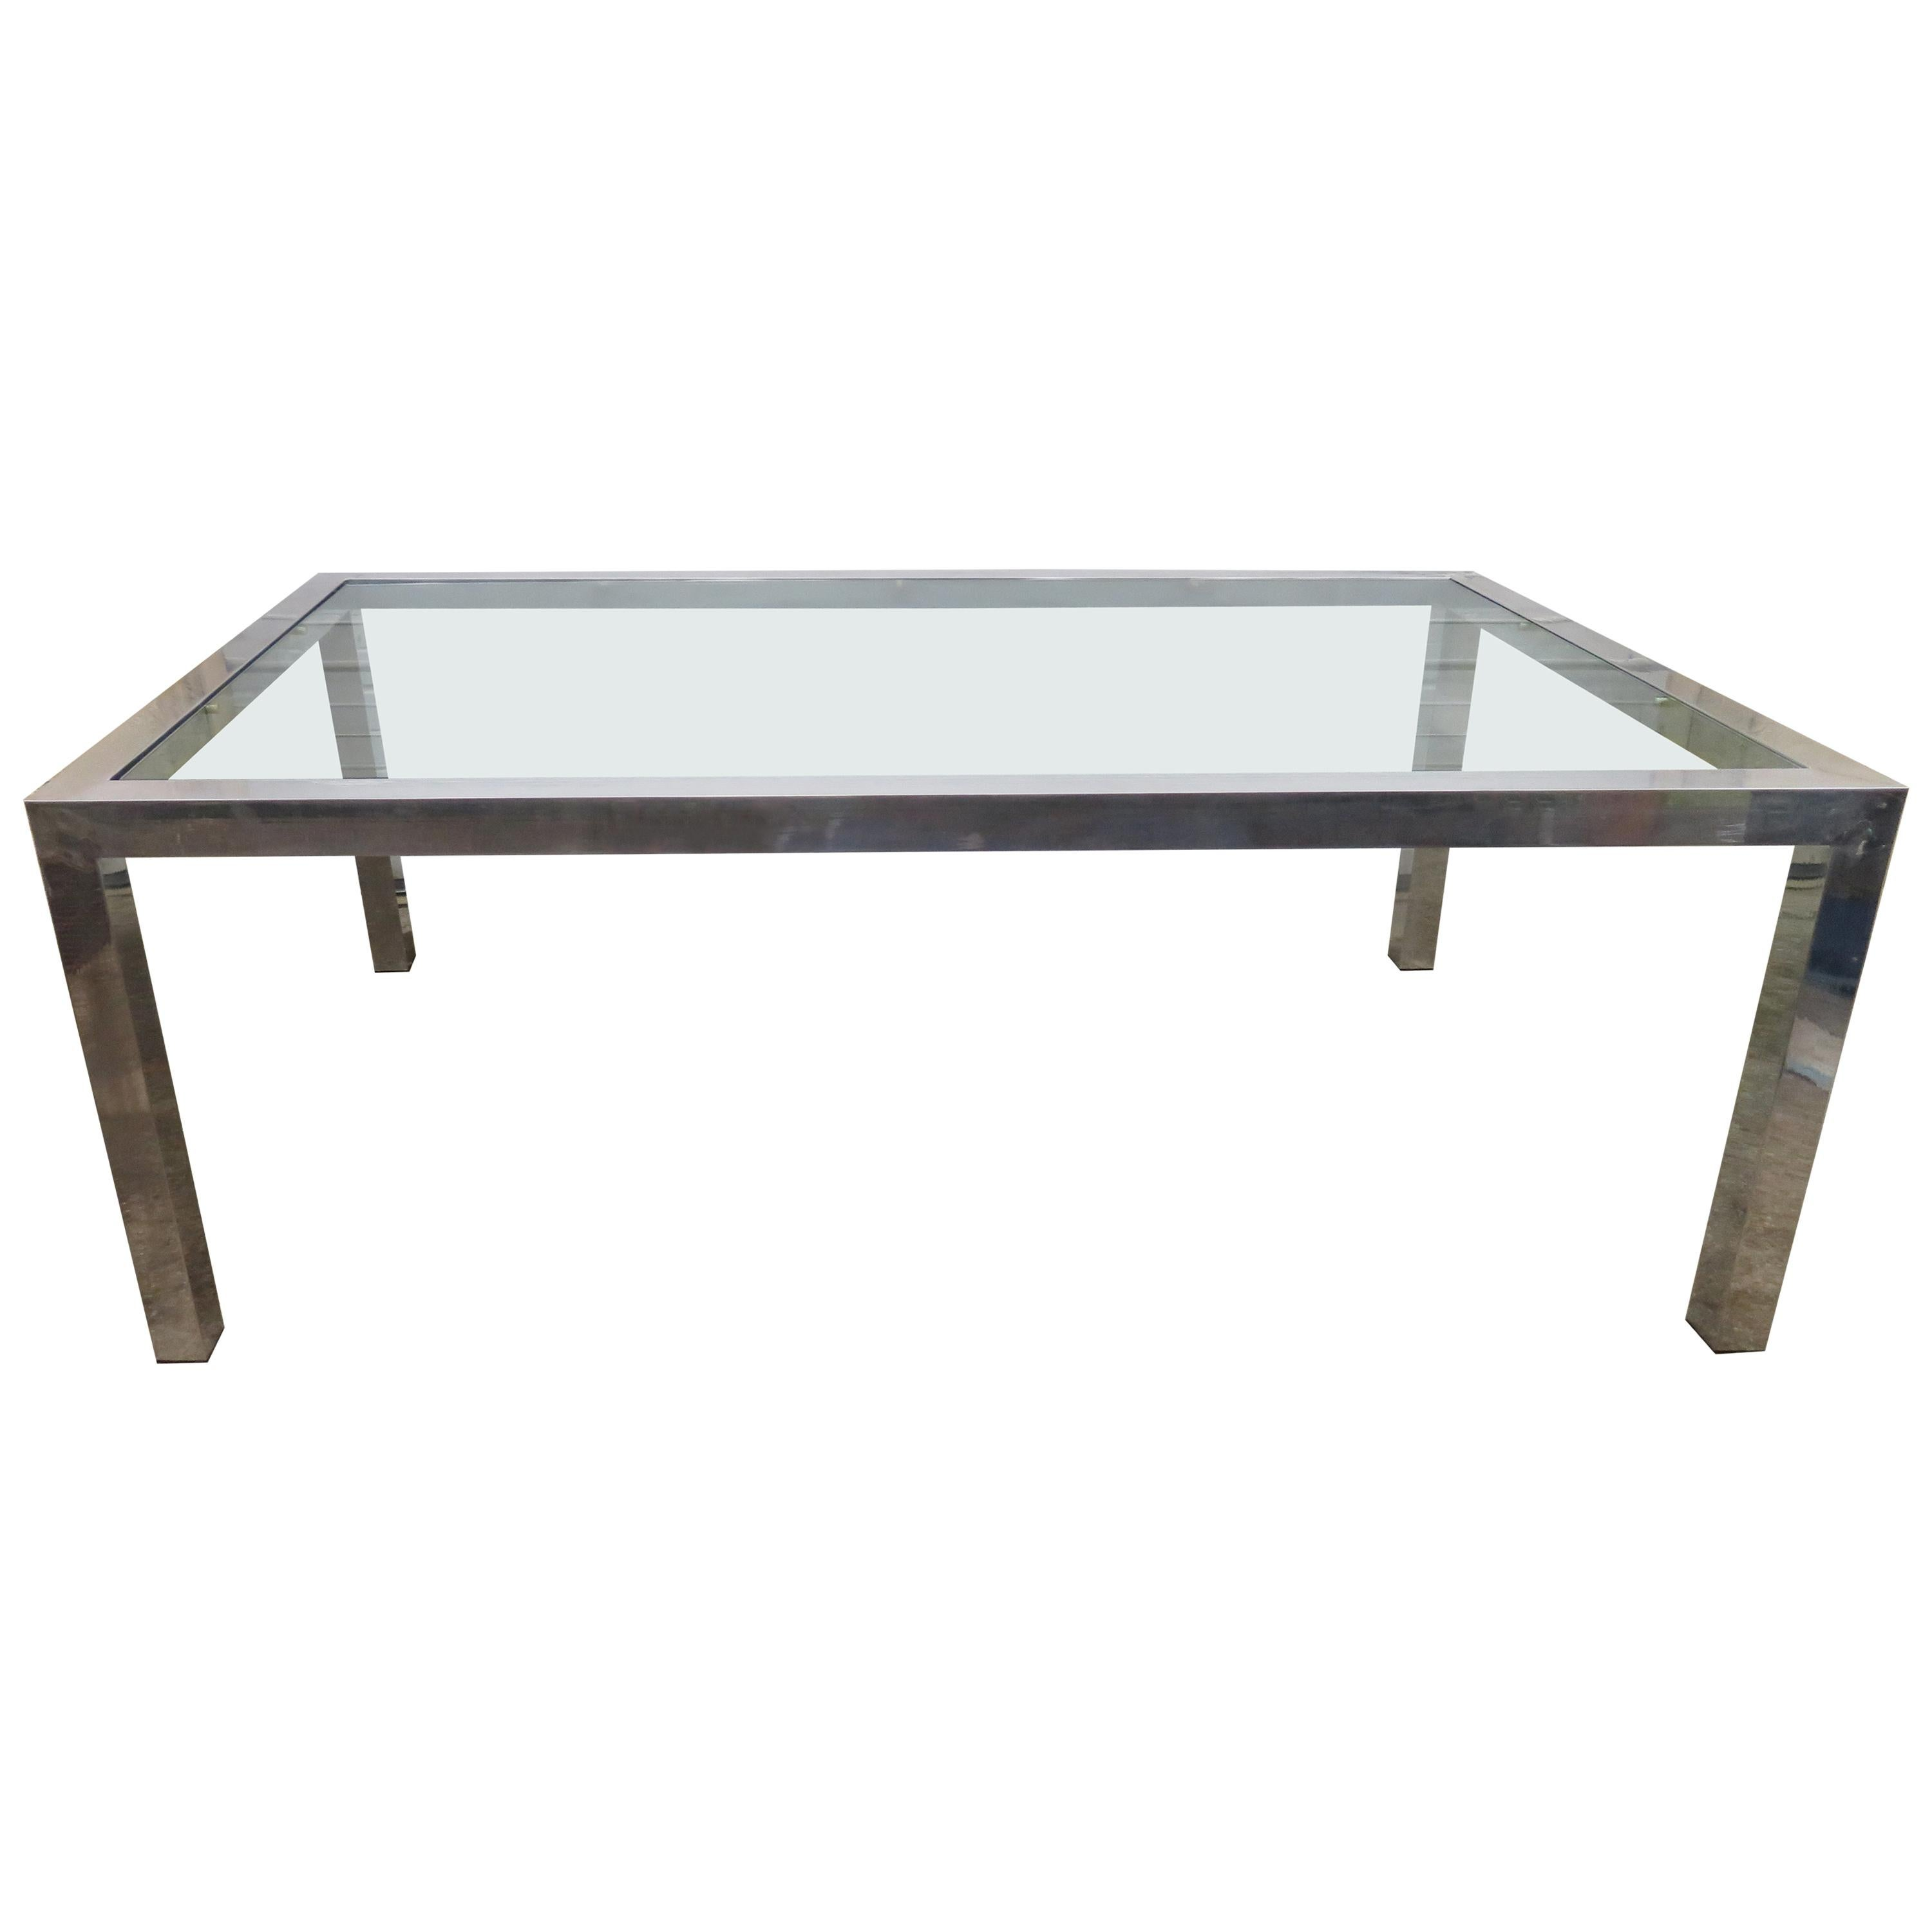 Lovely Milo Baughman Thick Chunky Aluminum Parson Style Dining Table Midcentury